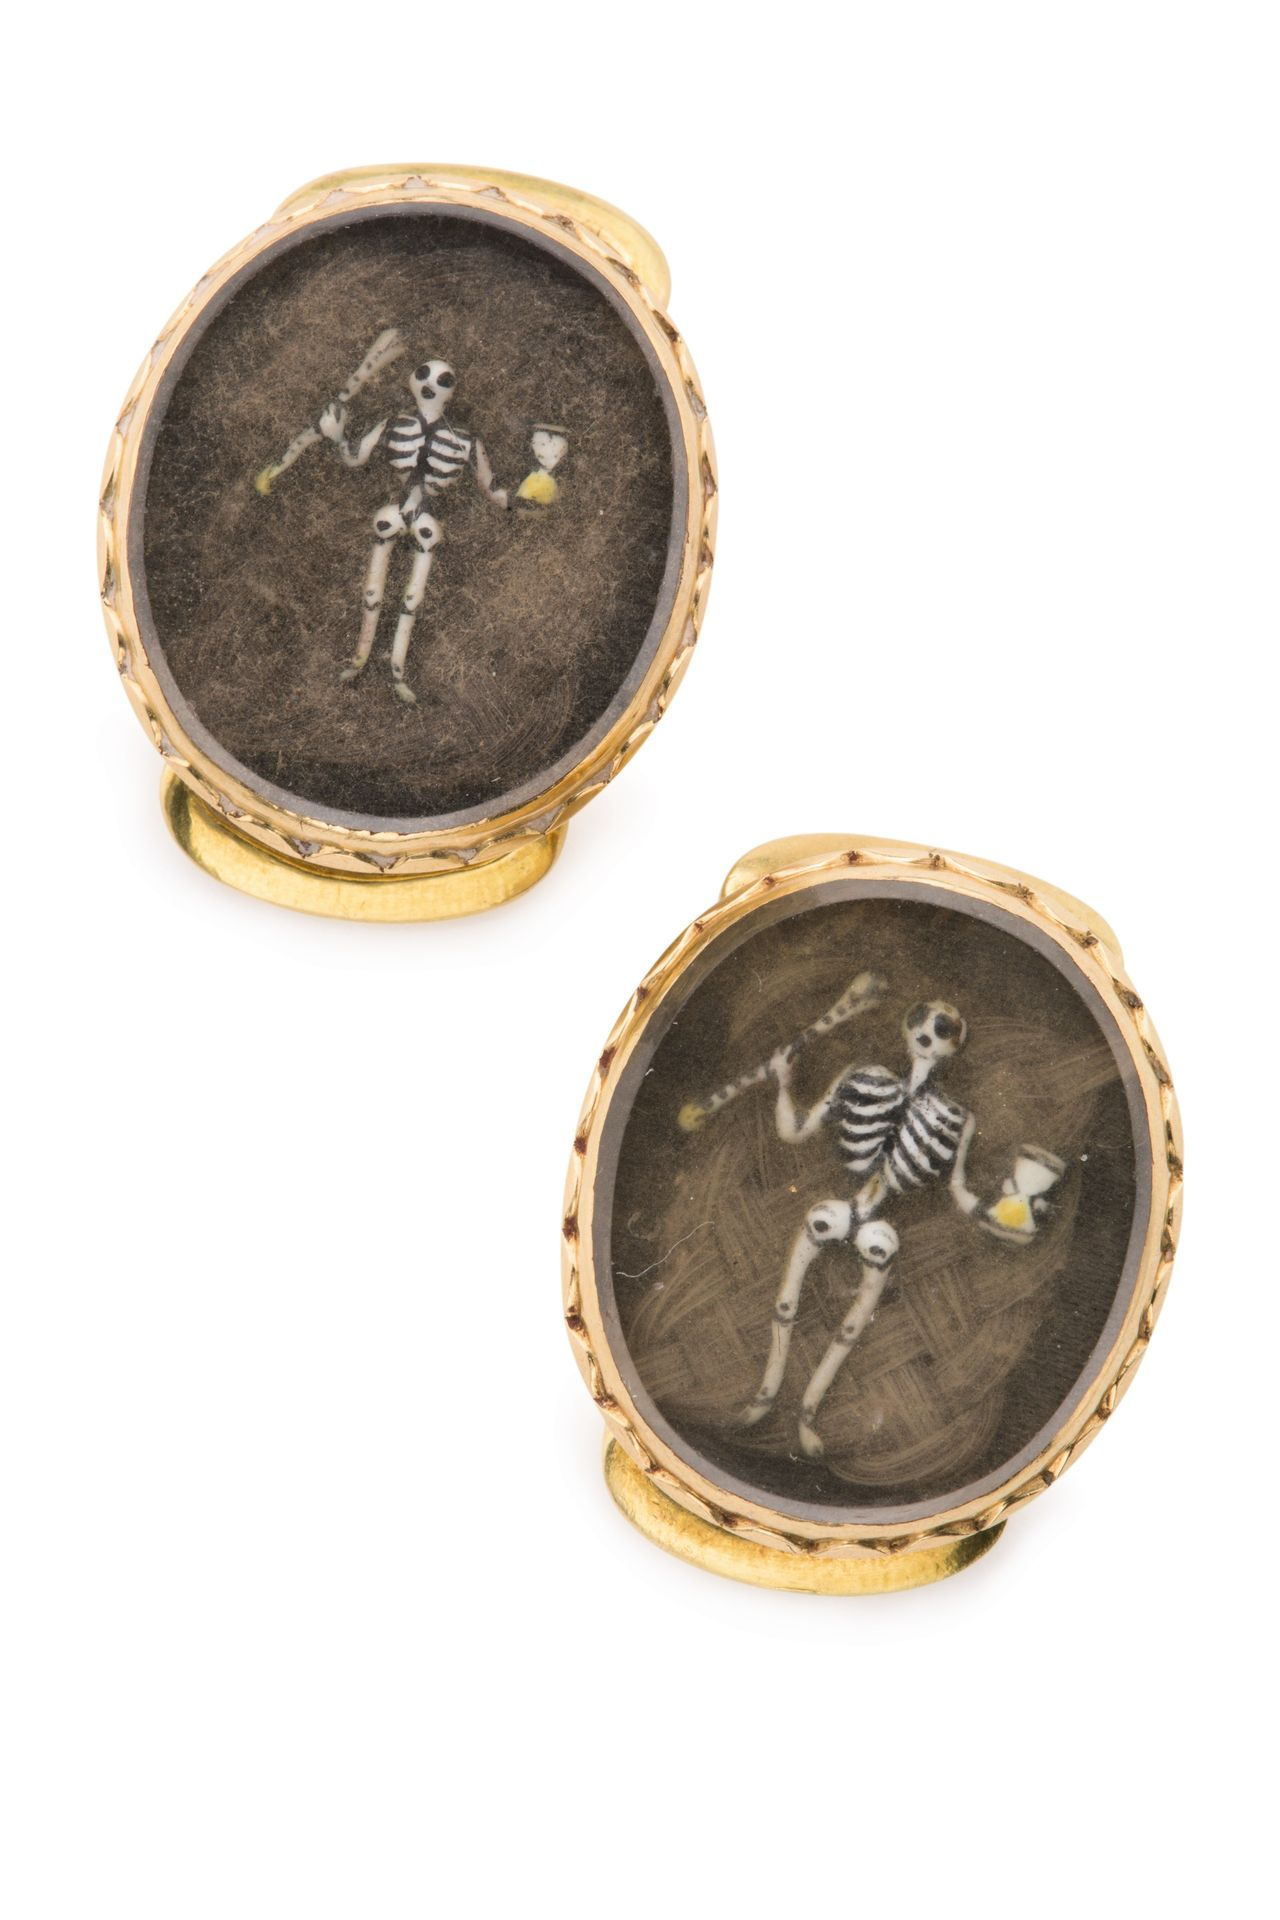 Two Matching English Gold And Hairwork Mourning Slides, Dated 1684